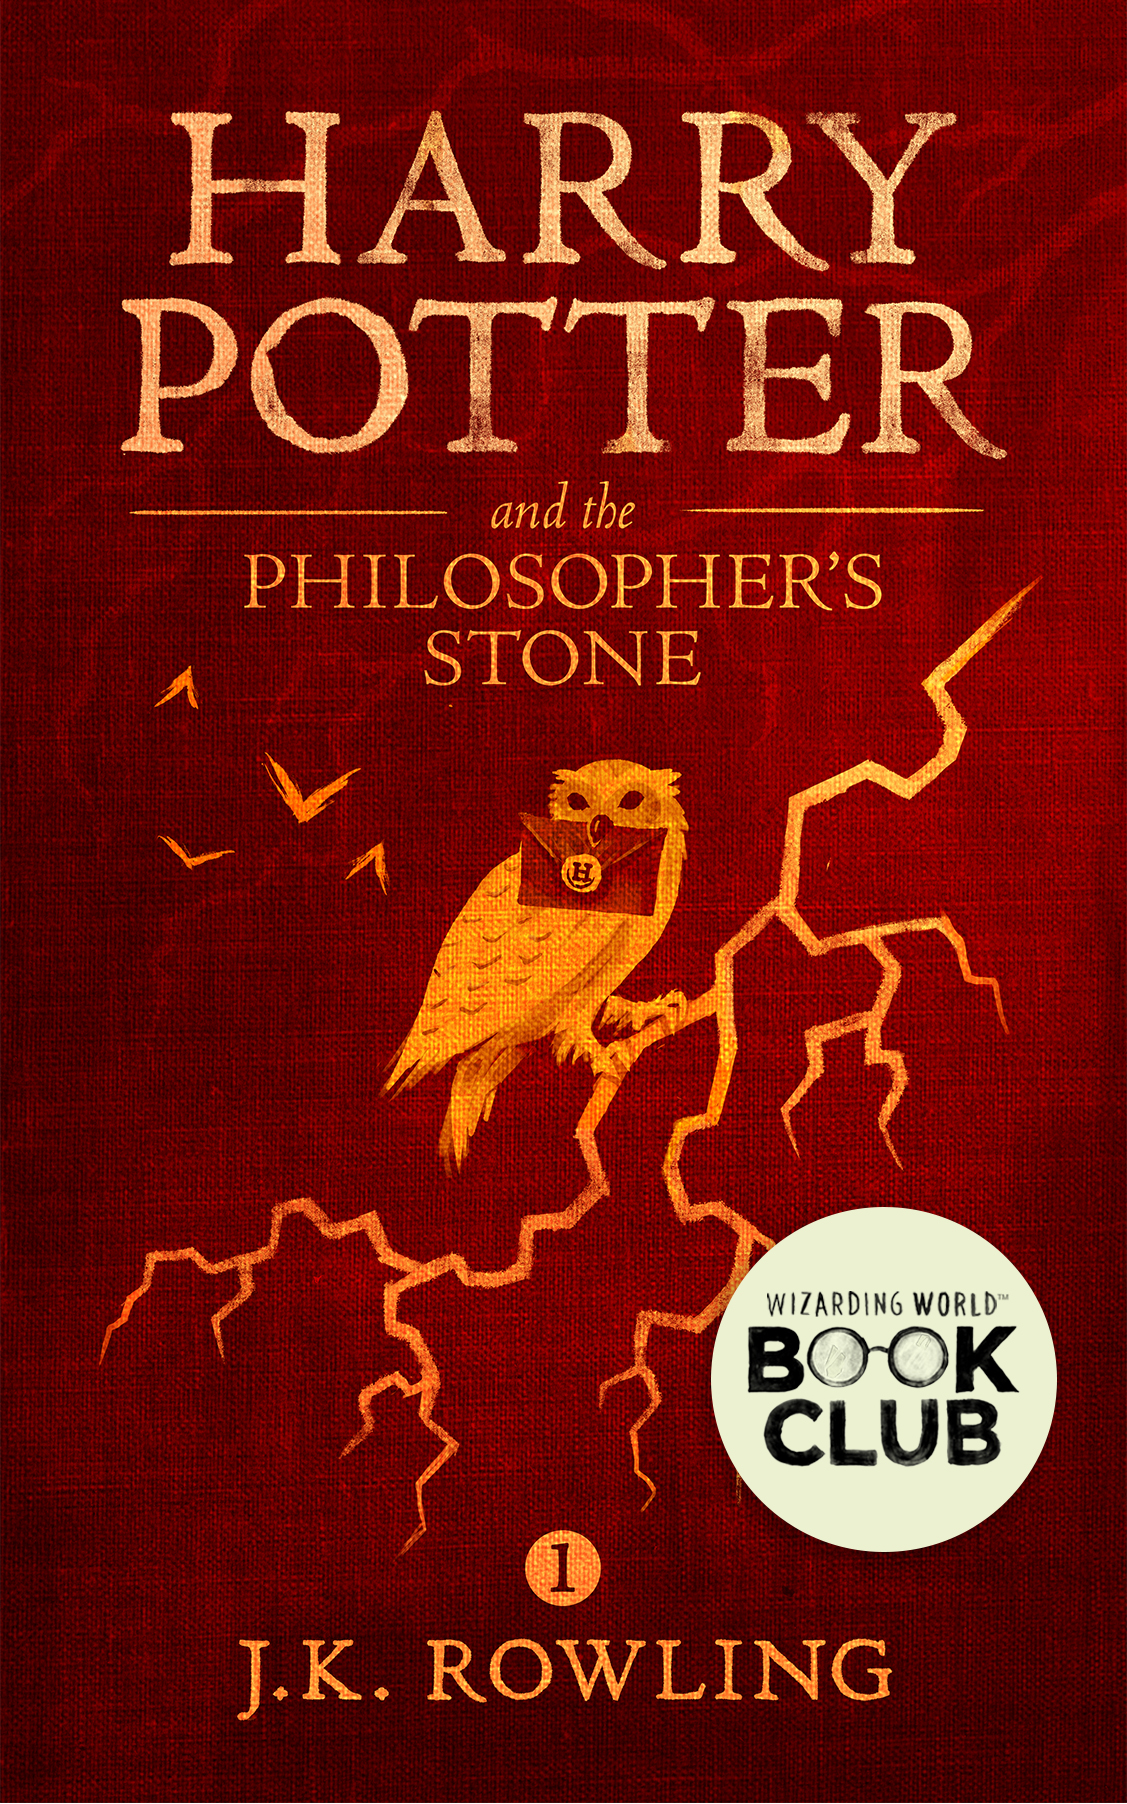 Harry Potter and the Philosopher's Stone | Rowling, J.K.